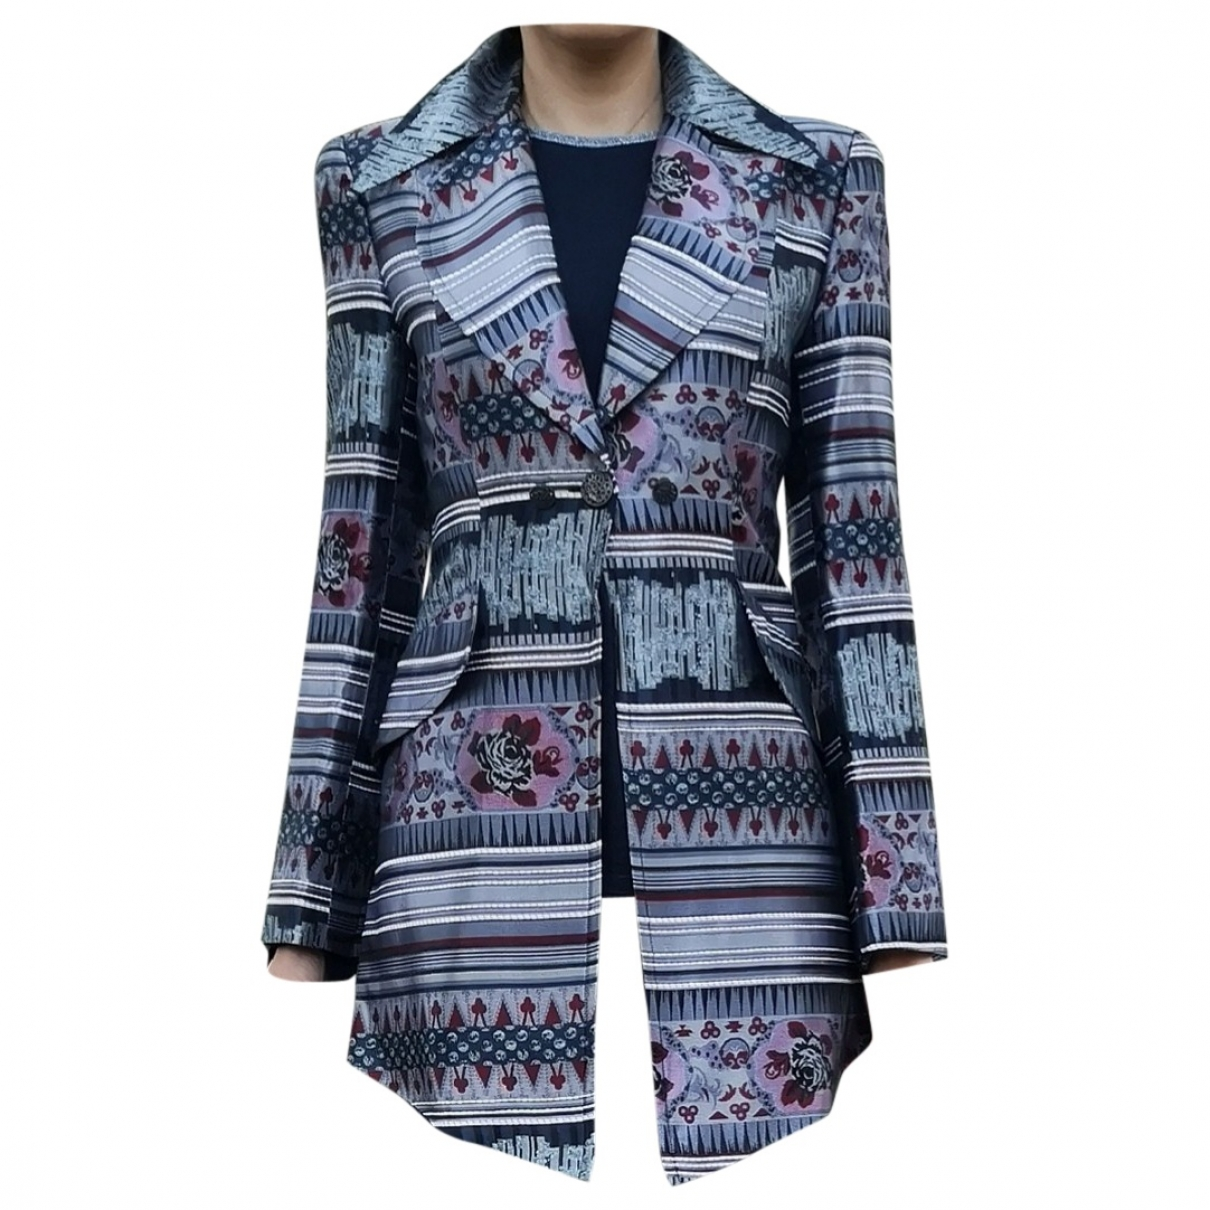 Christian Lacroix \N Silver jacket for Women 38 FR